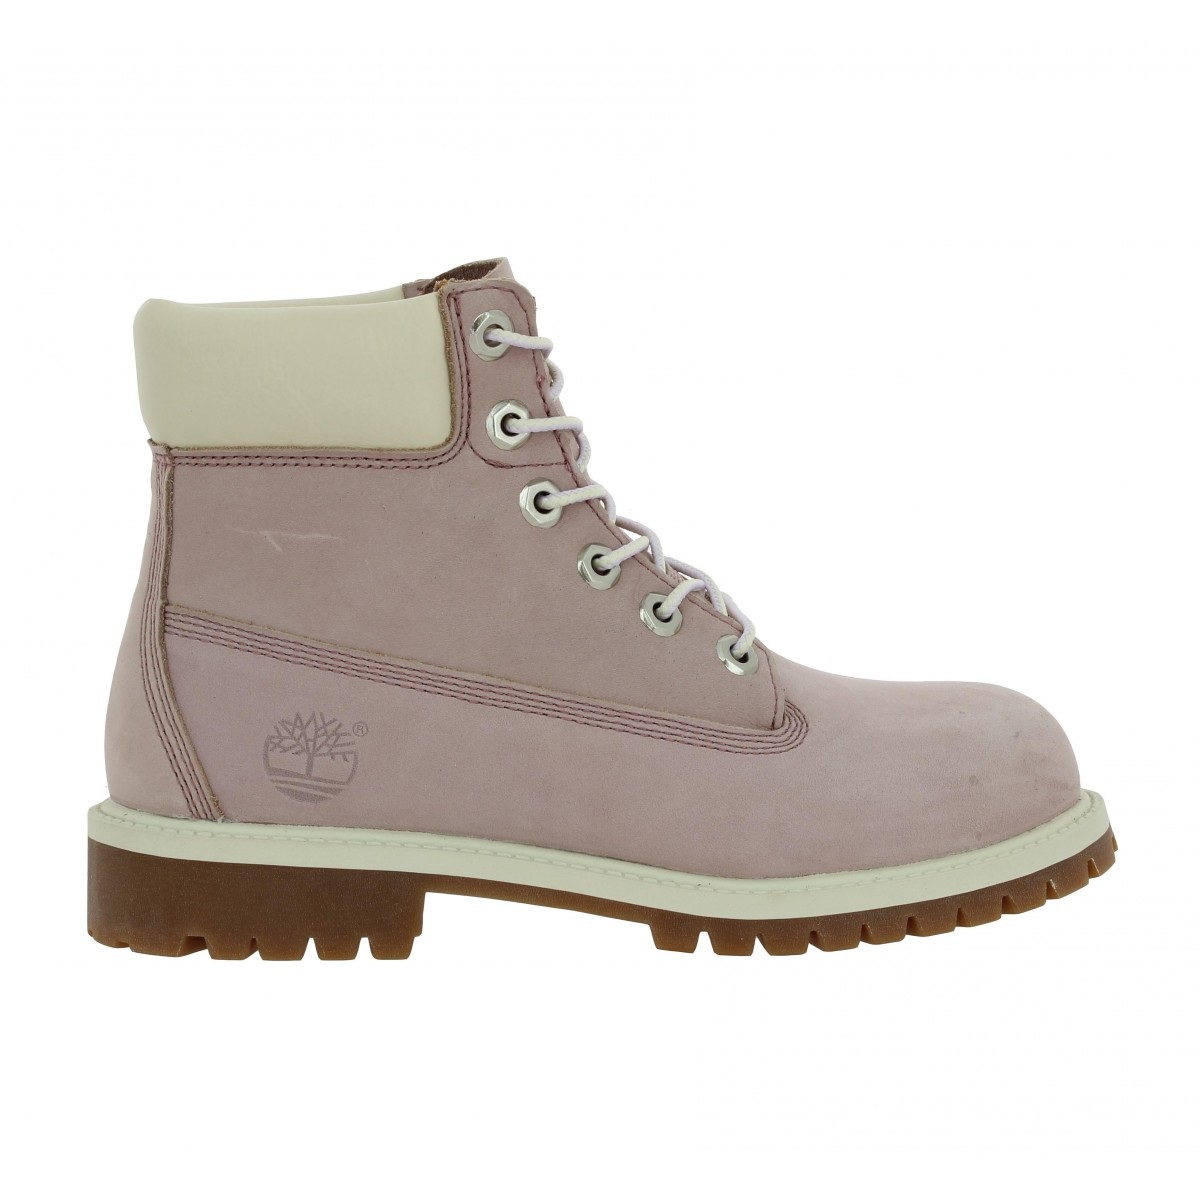 080735595a4 Timberland 6in premium velours femme bordeaux femme